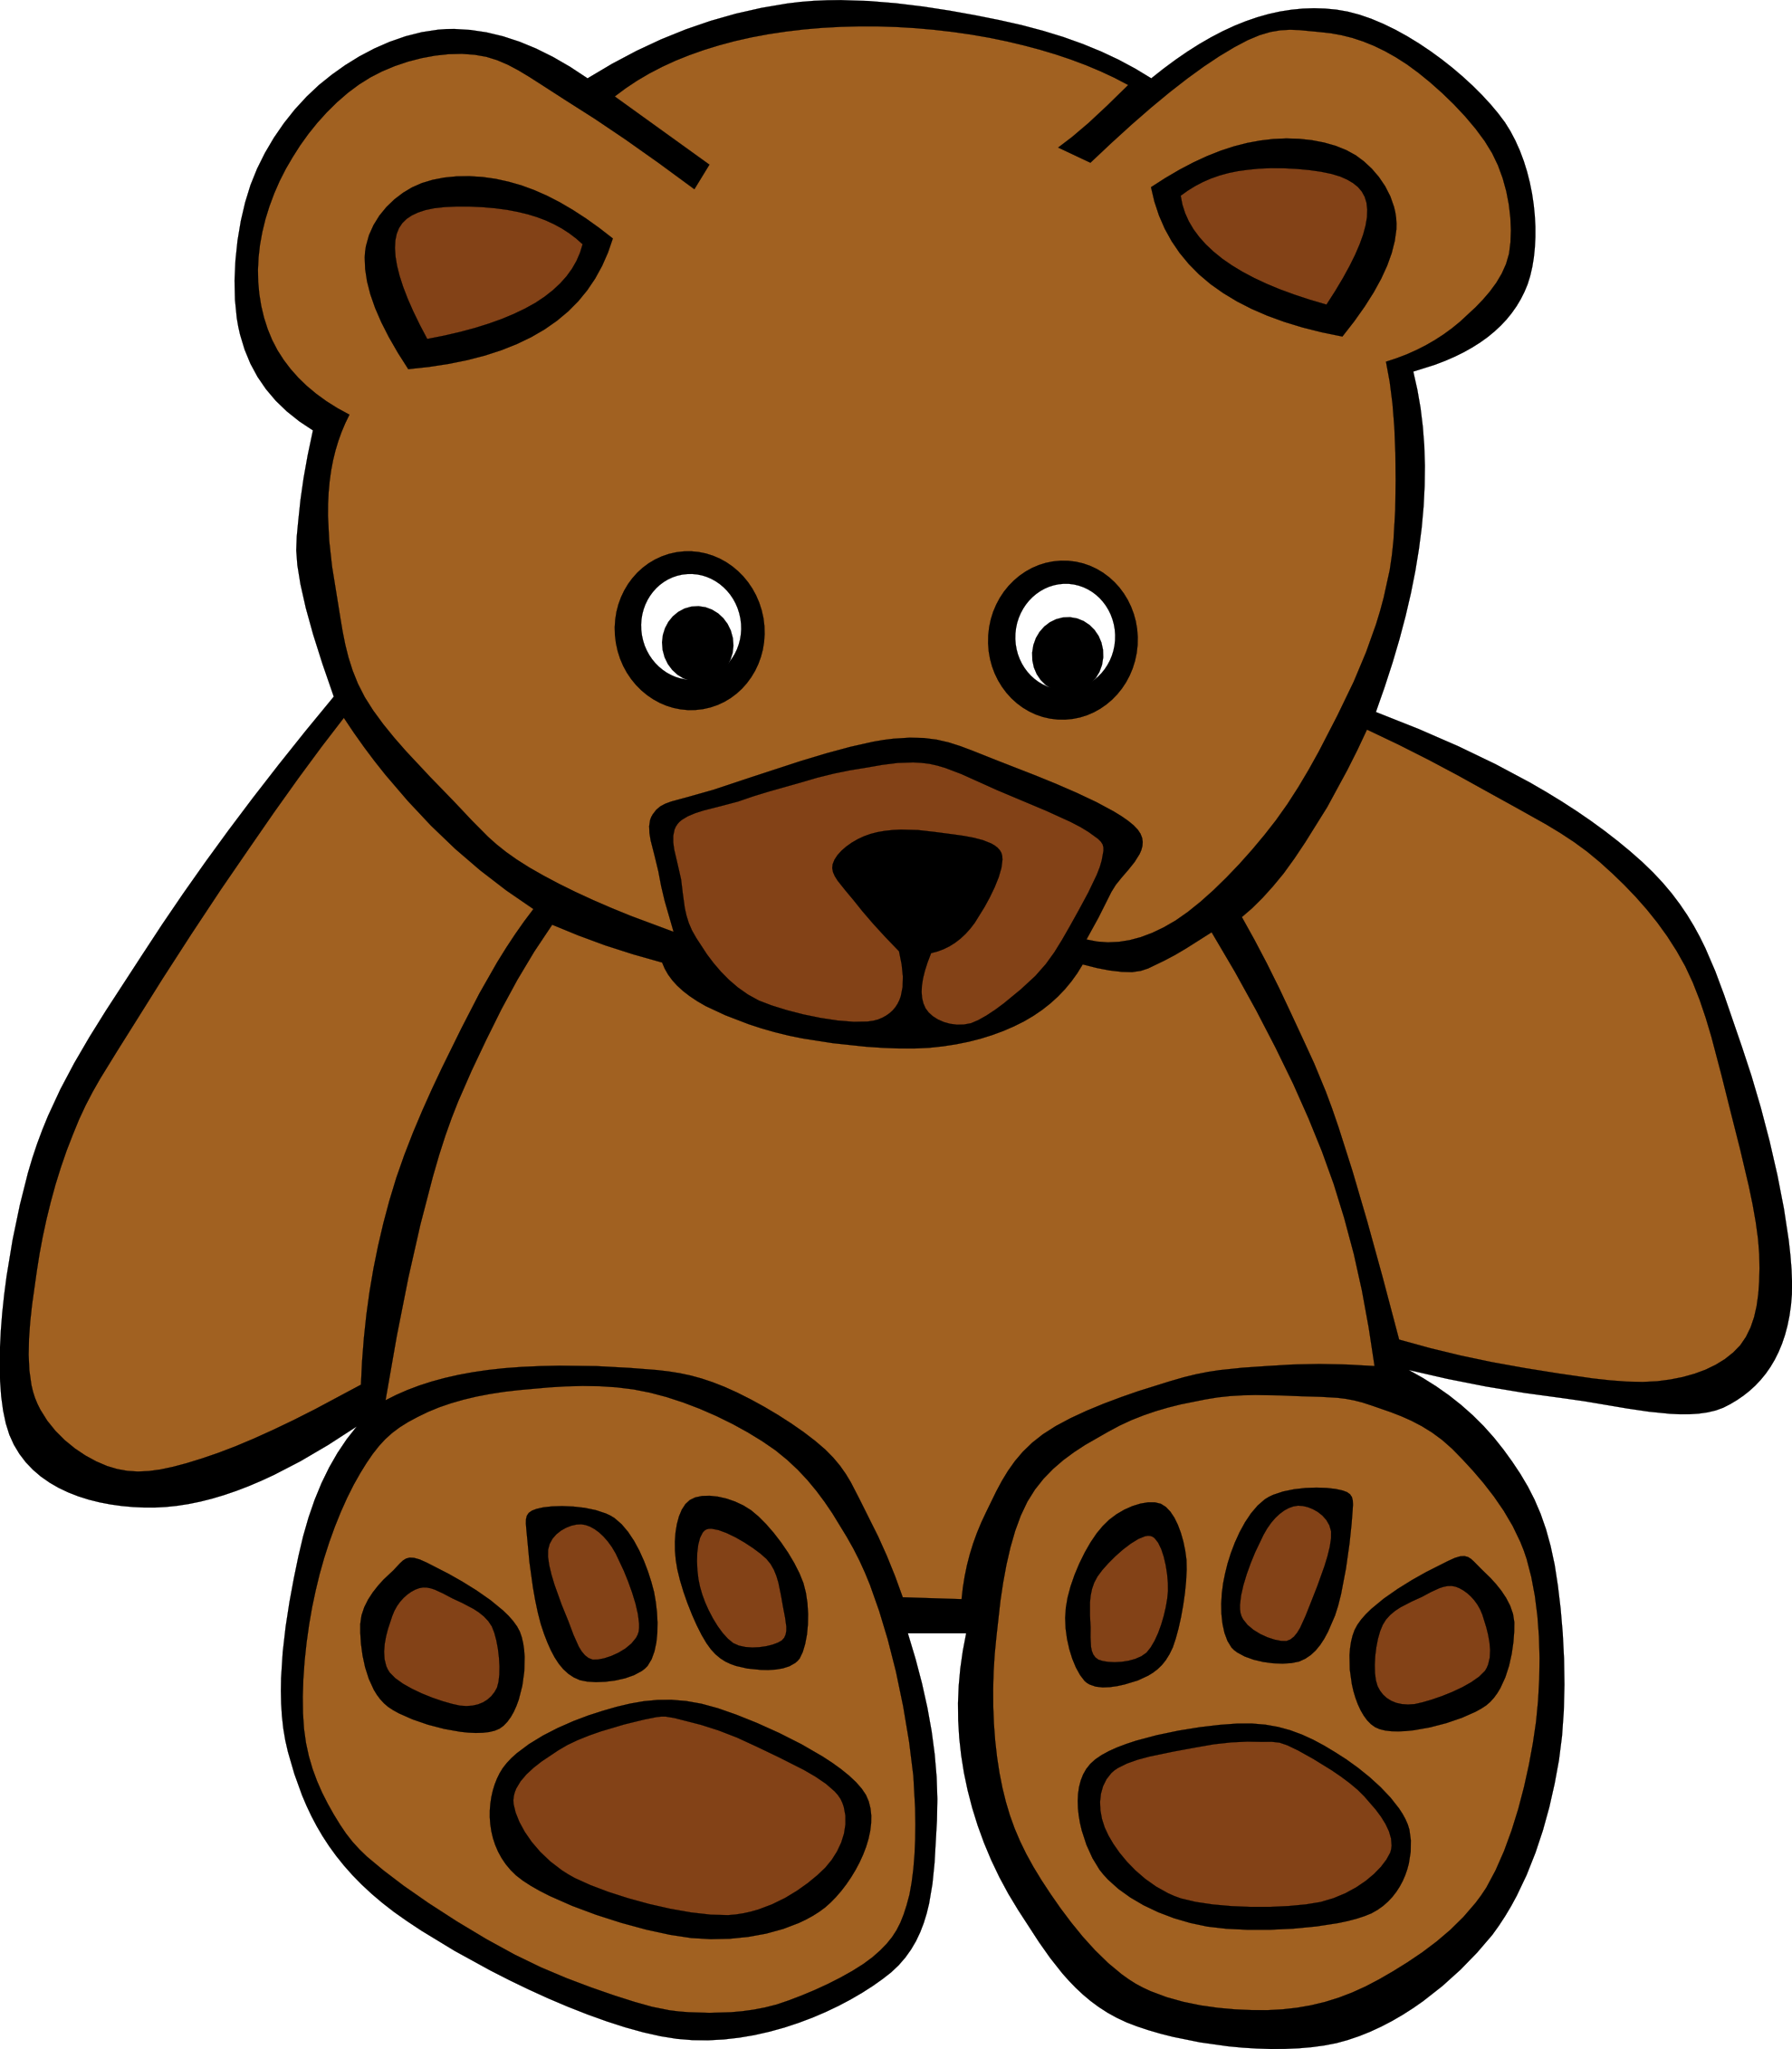 Glitch clipart beatle Clip Clip Bear Teddy Brown